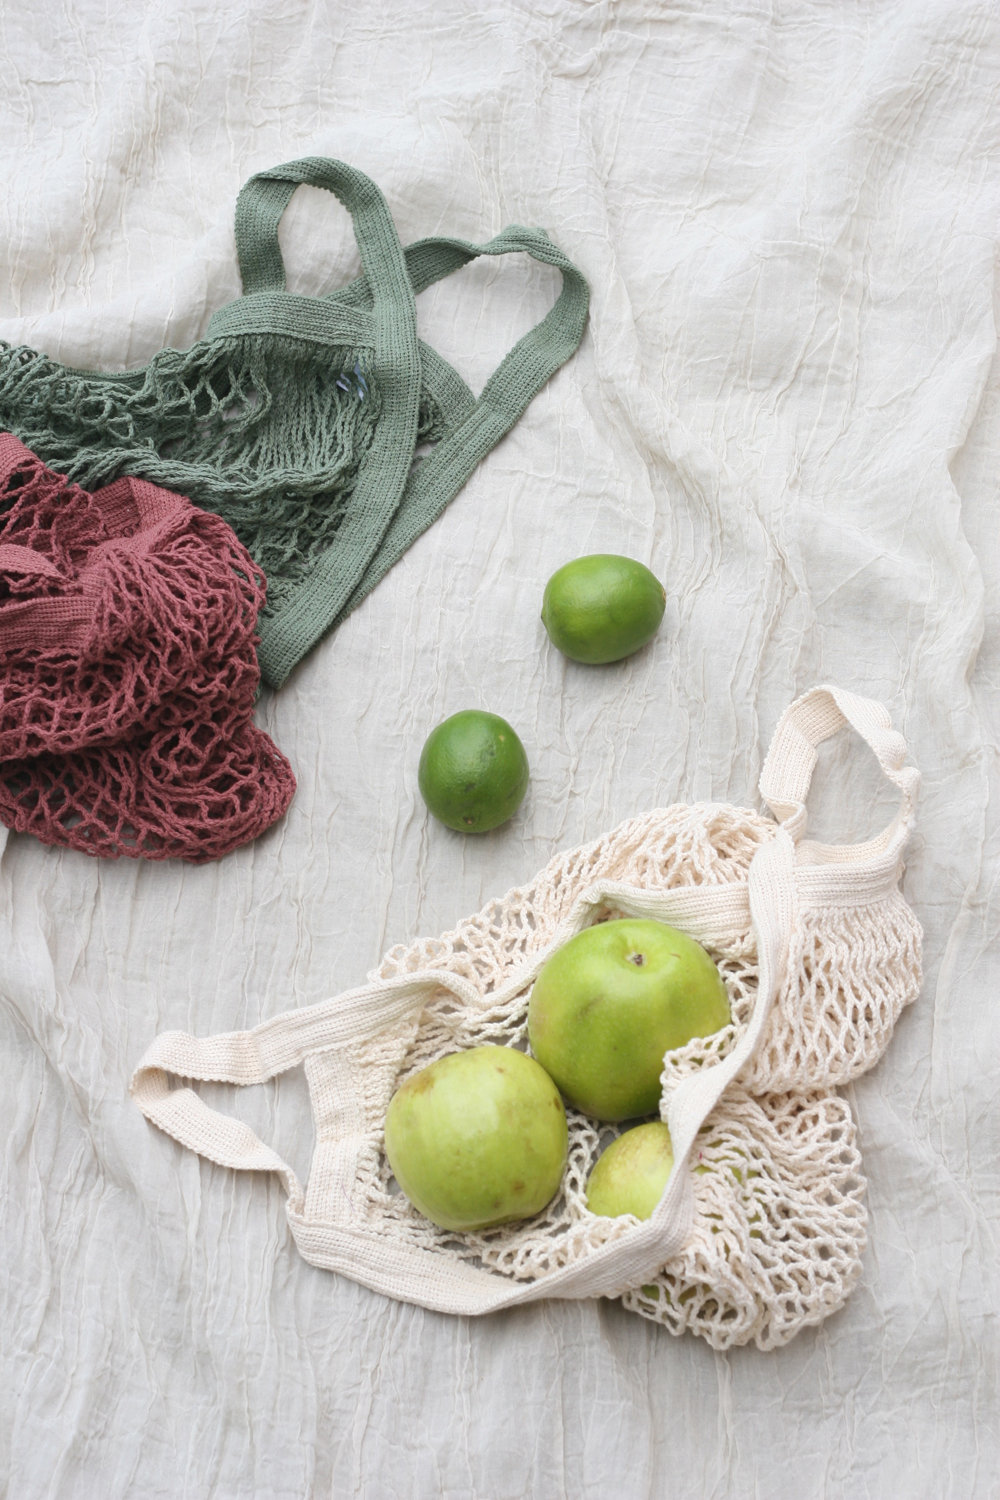 cotton+net+grocery+bag.jpg